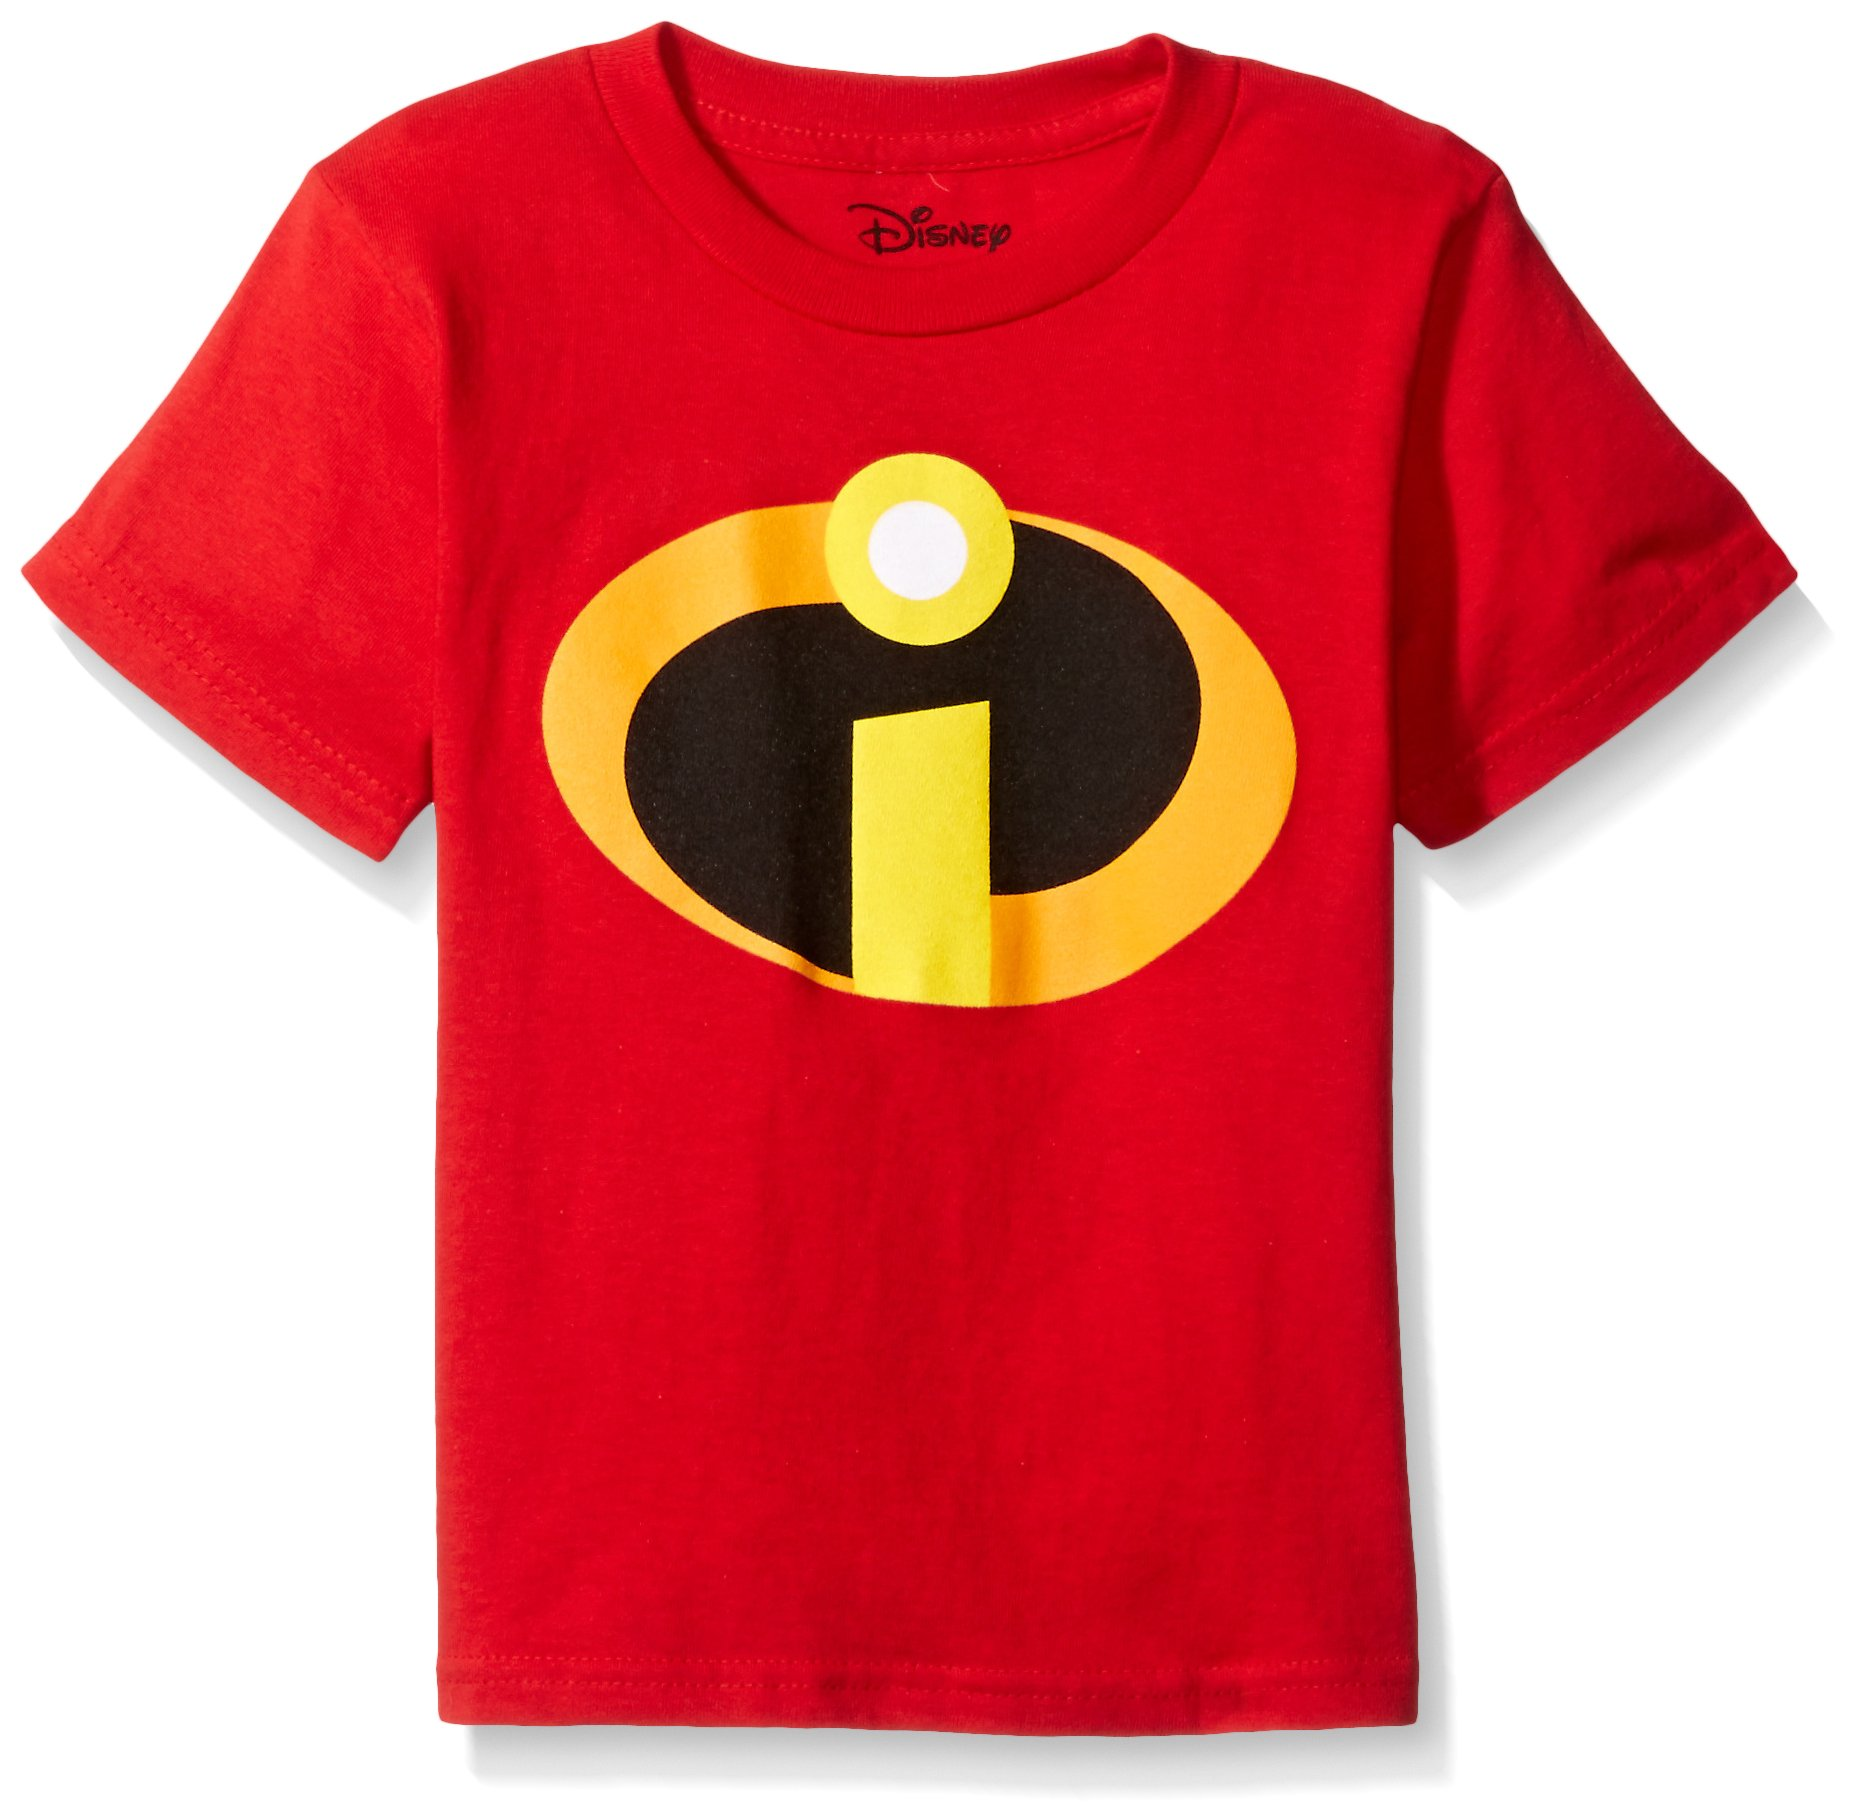 Disney Boys' Little Boys' The Incredibles T-Shirt, Red, 4